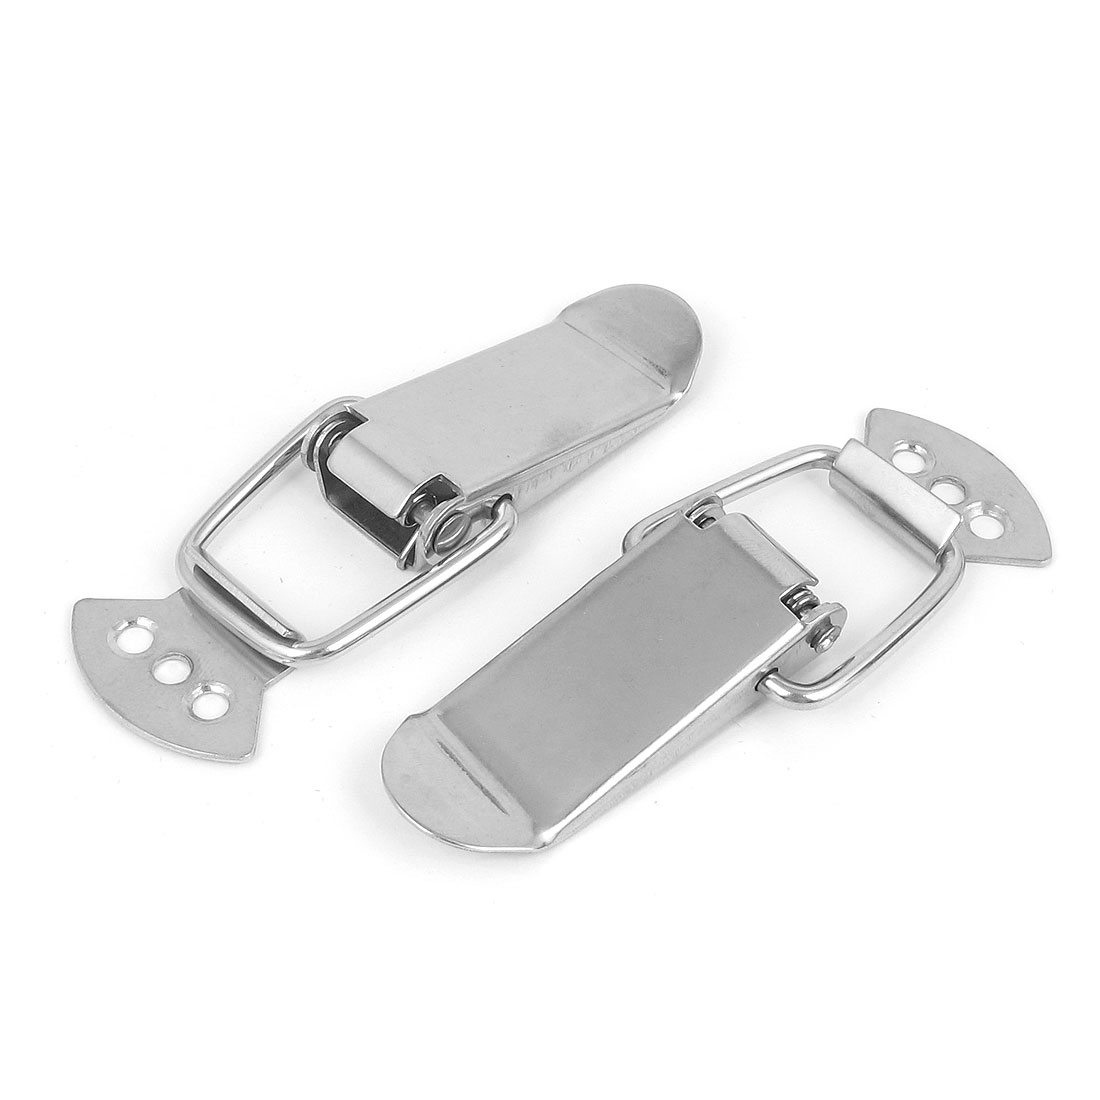 Suitcase Drawer Chest Box Spring Loaded Toggle Latch Catch Hasp 95mm Long 2pcs